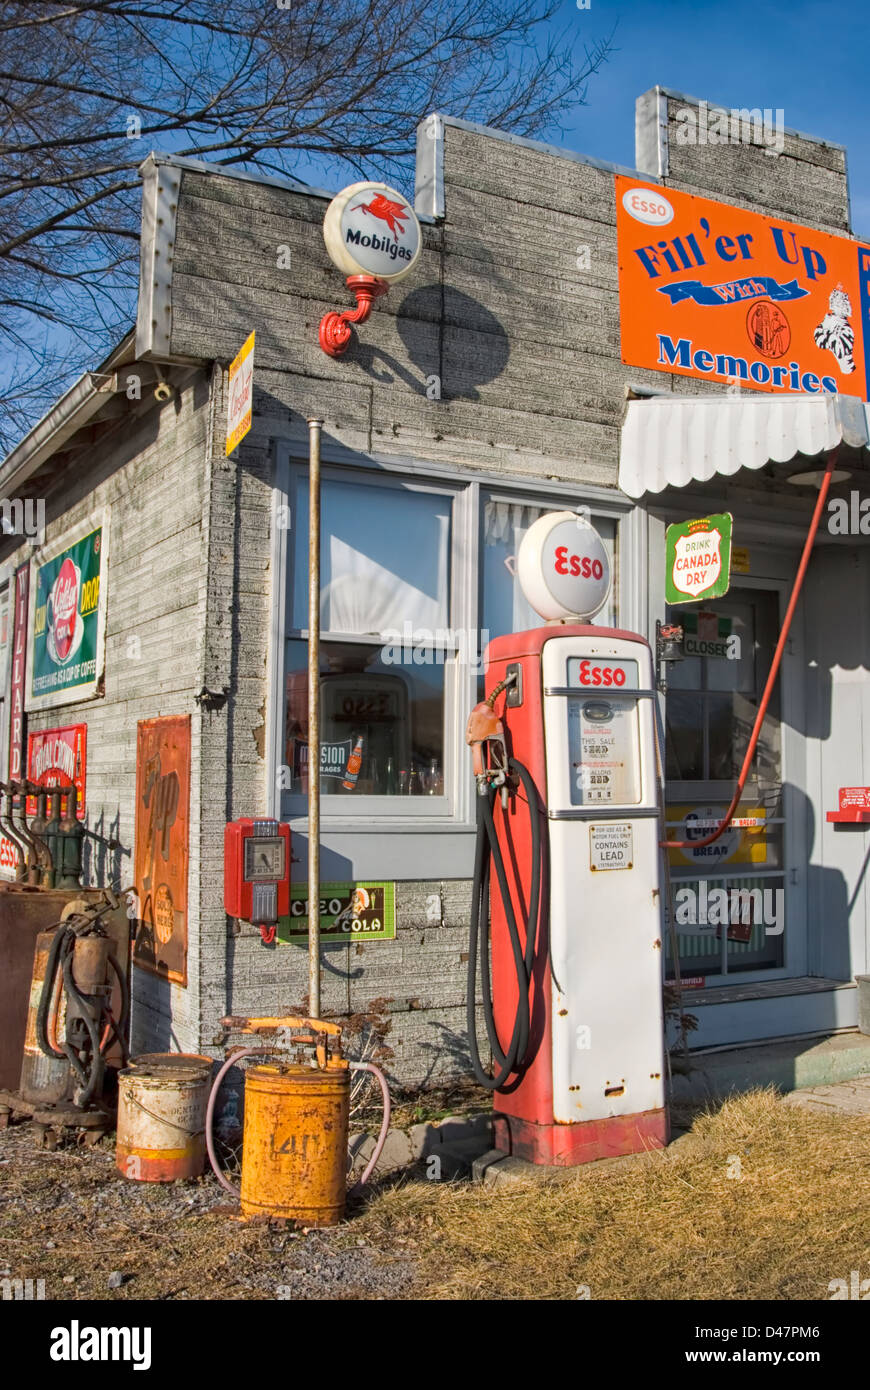 Gas station stuff and Esso gas pump at a country store, with other old fashioned Americana and memorabilia. - Stock Image